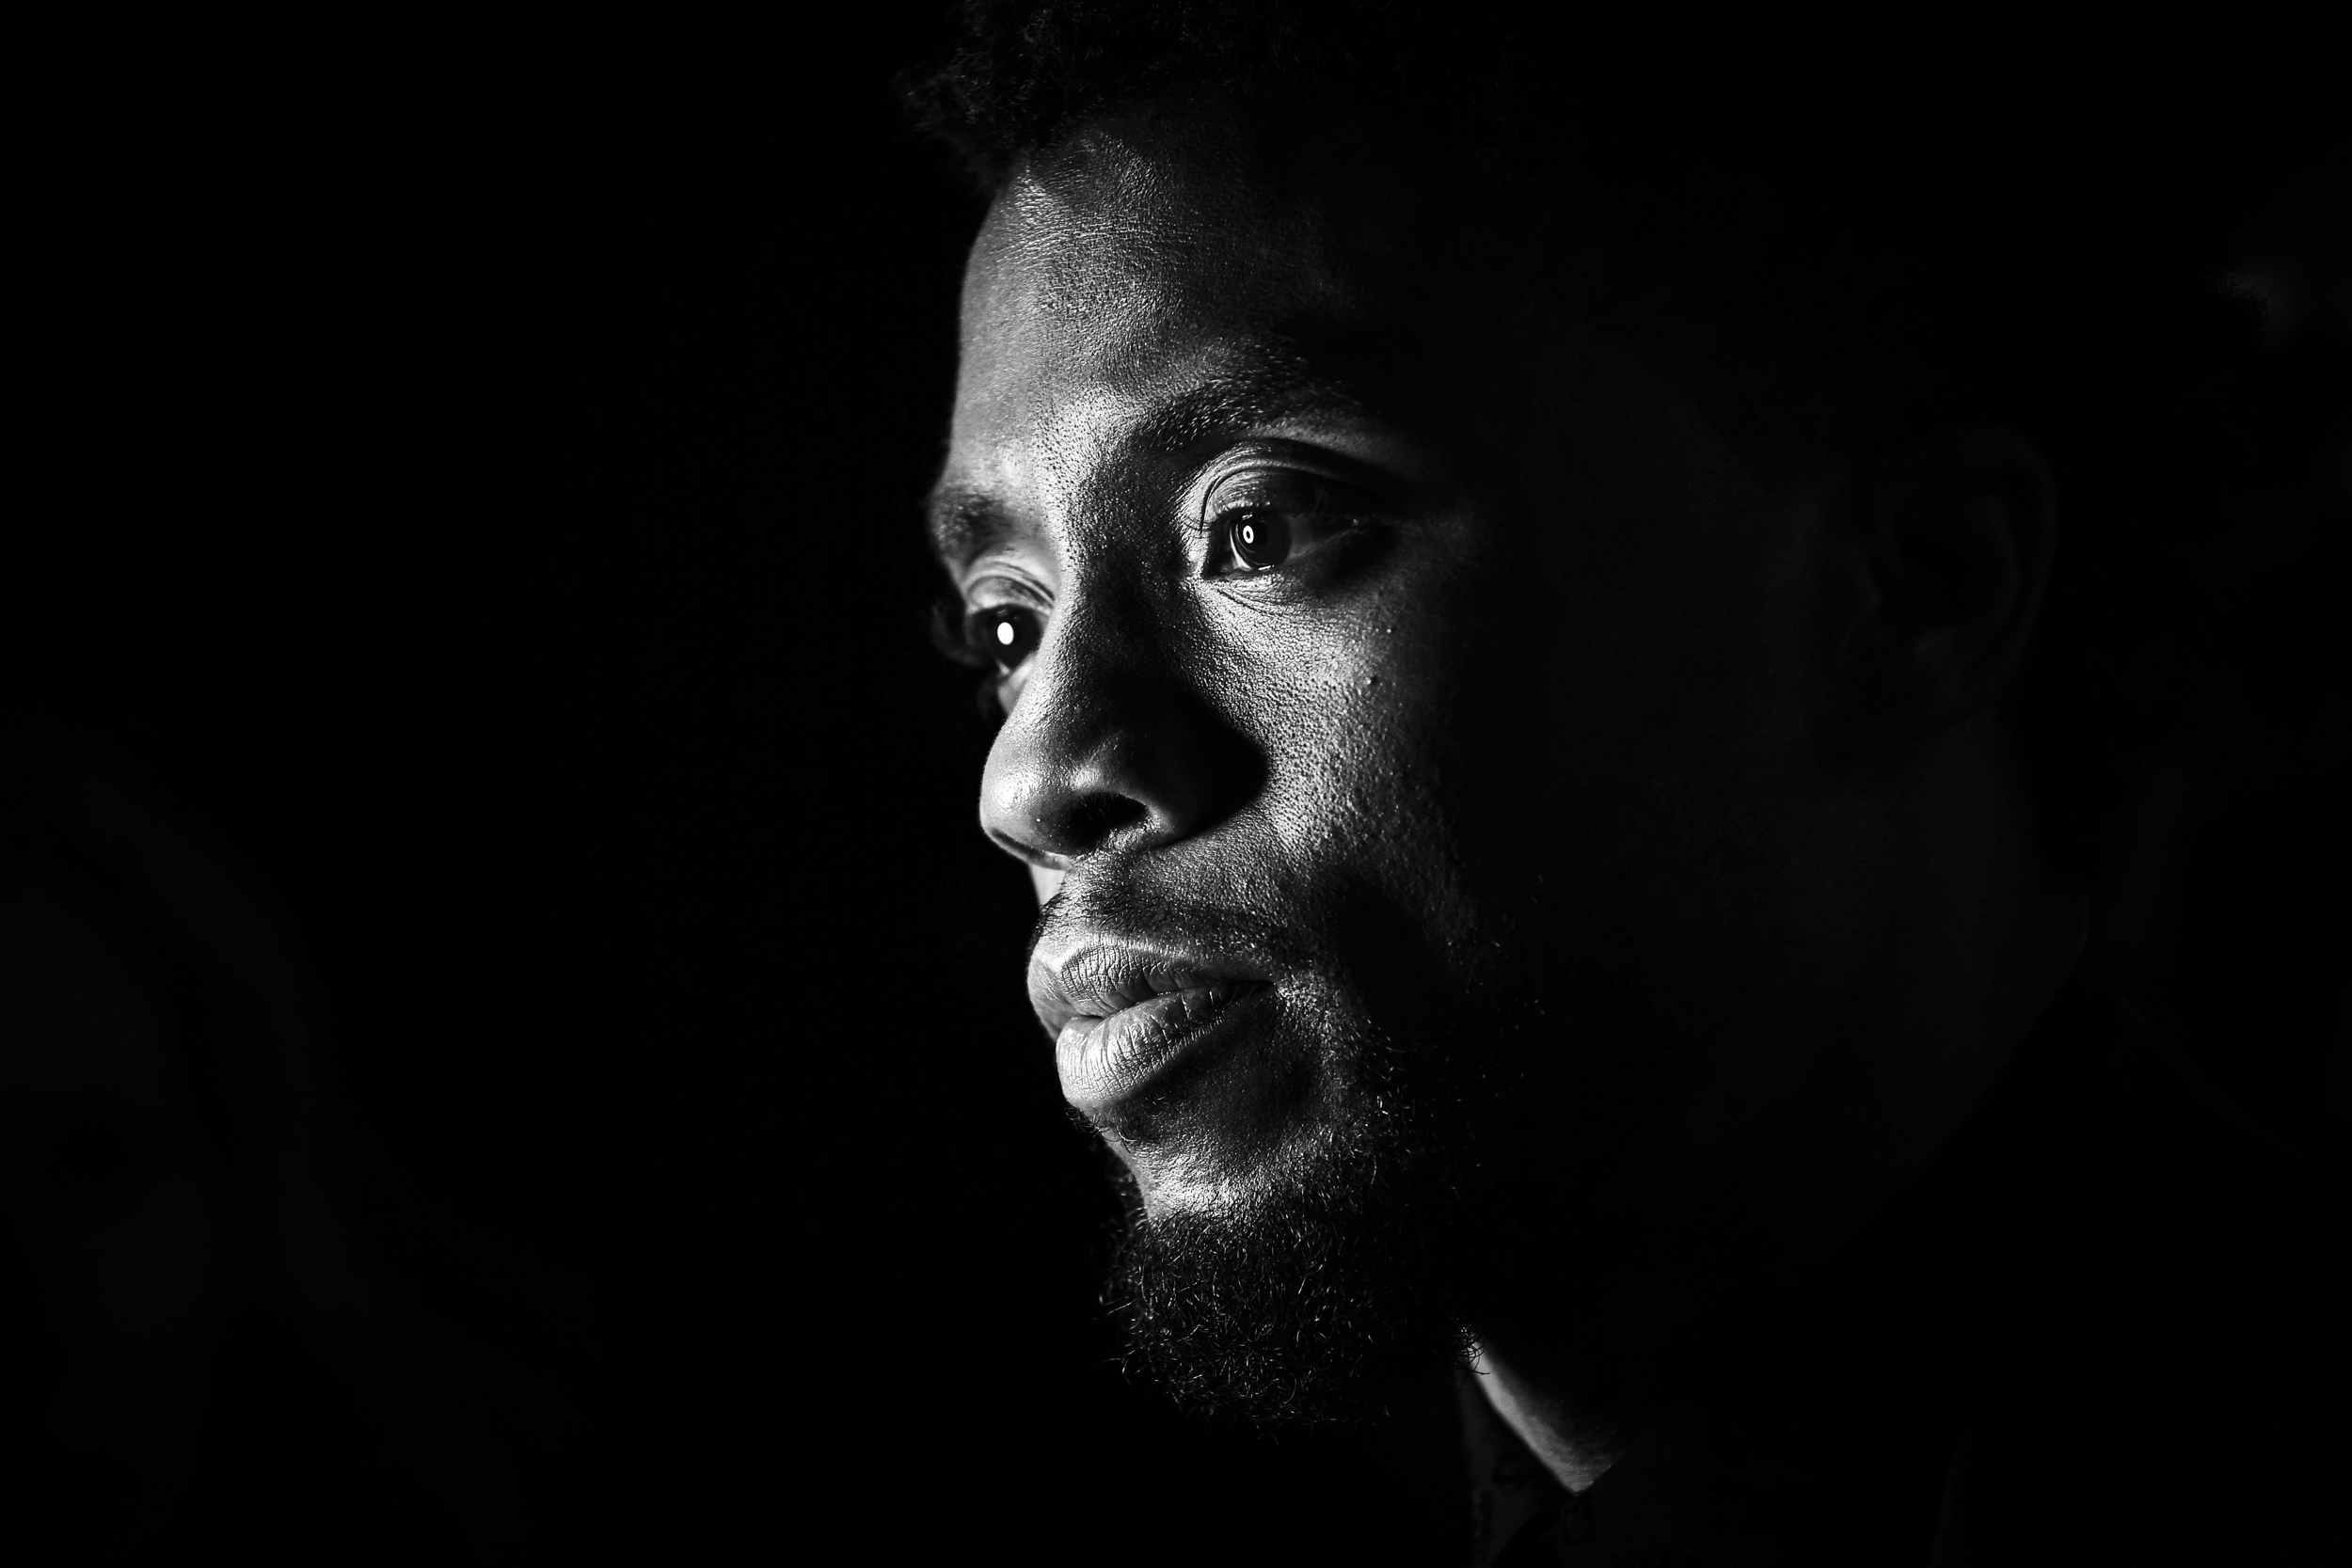 Chadwick Boseman played a superhero on screen. Off screen, his death probably saved lives.